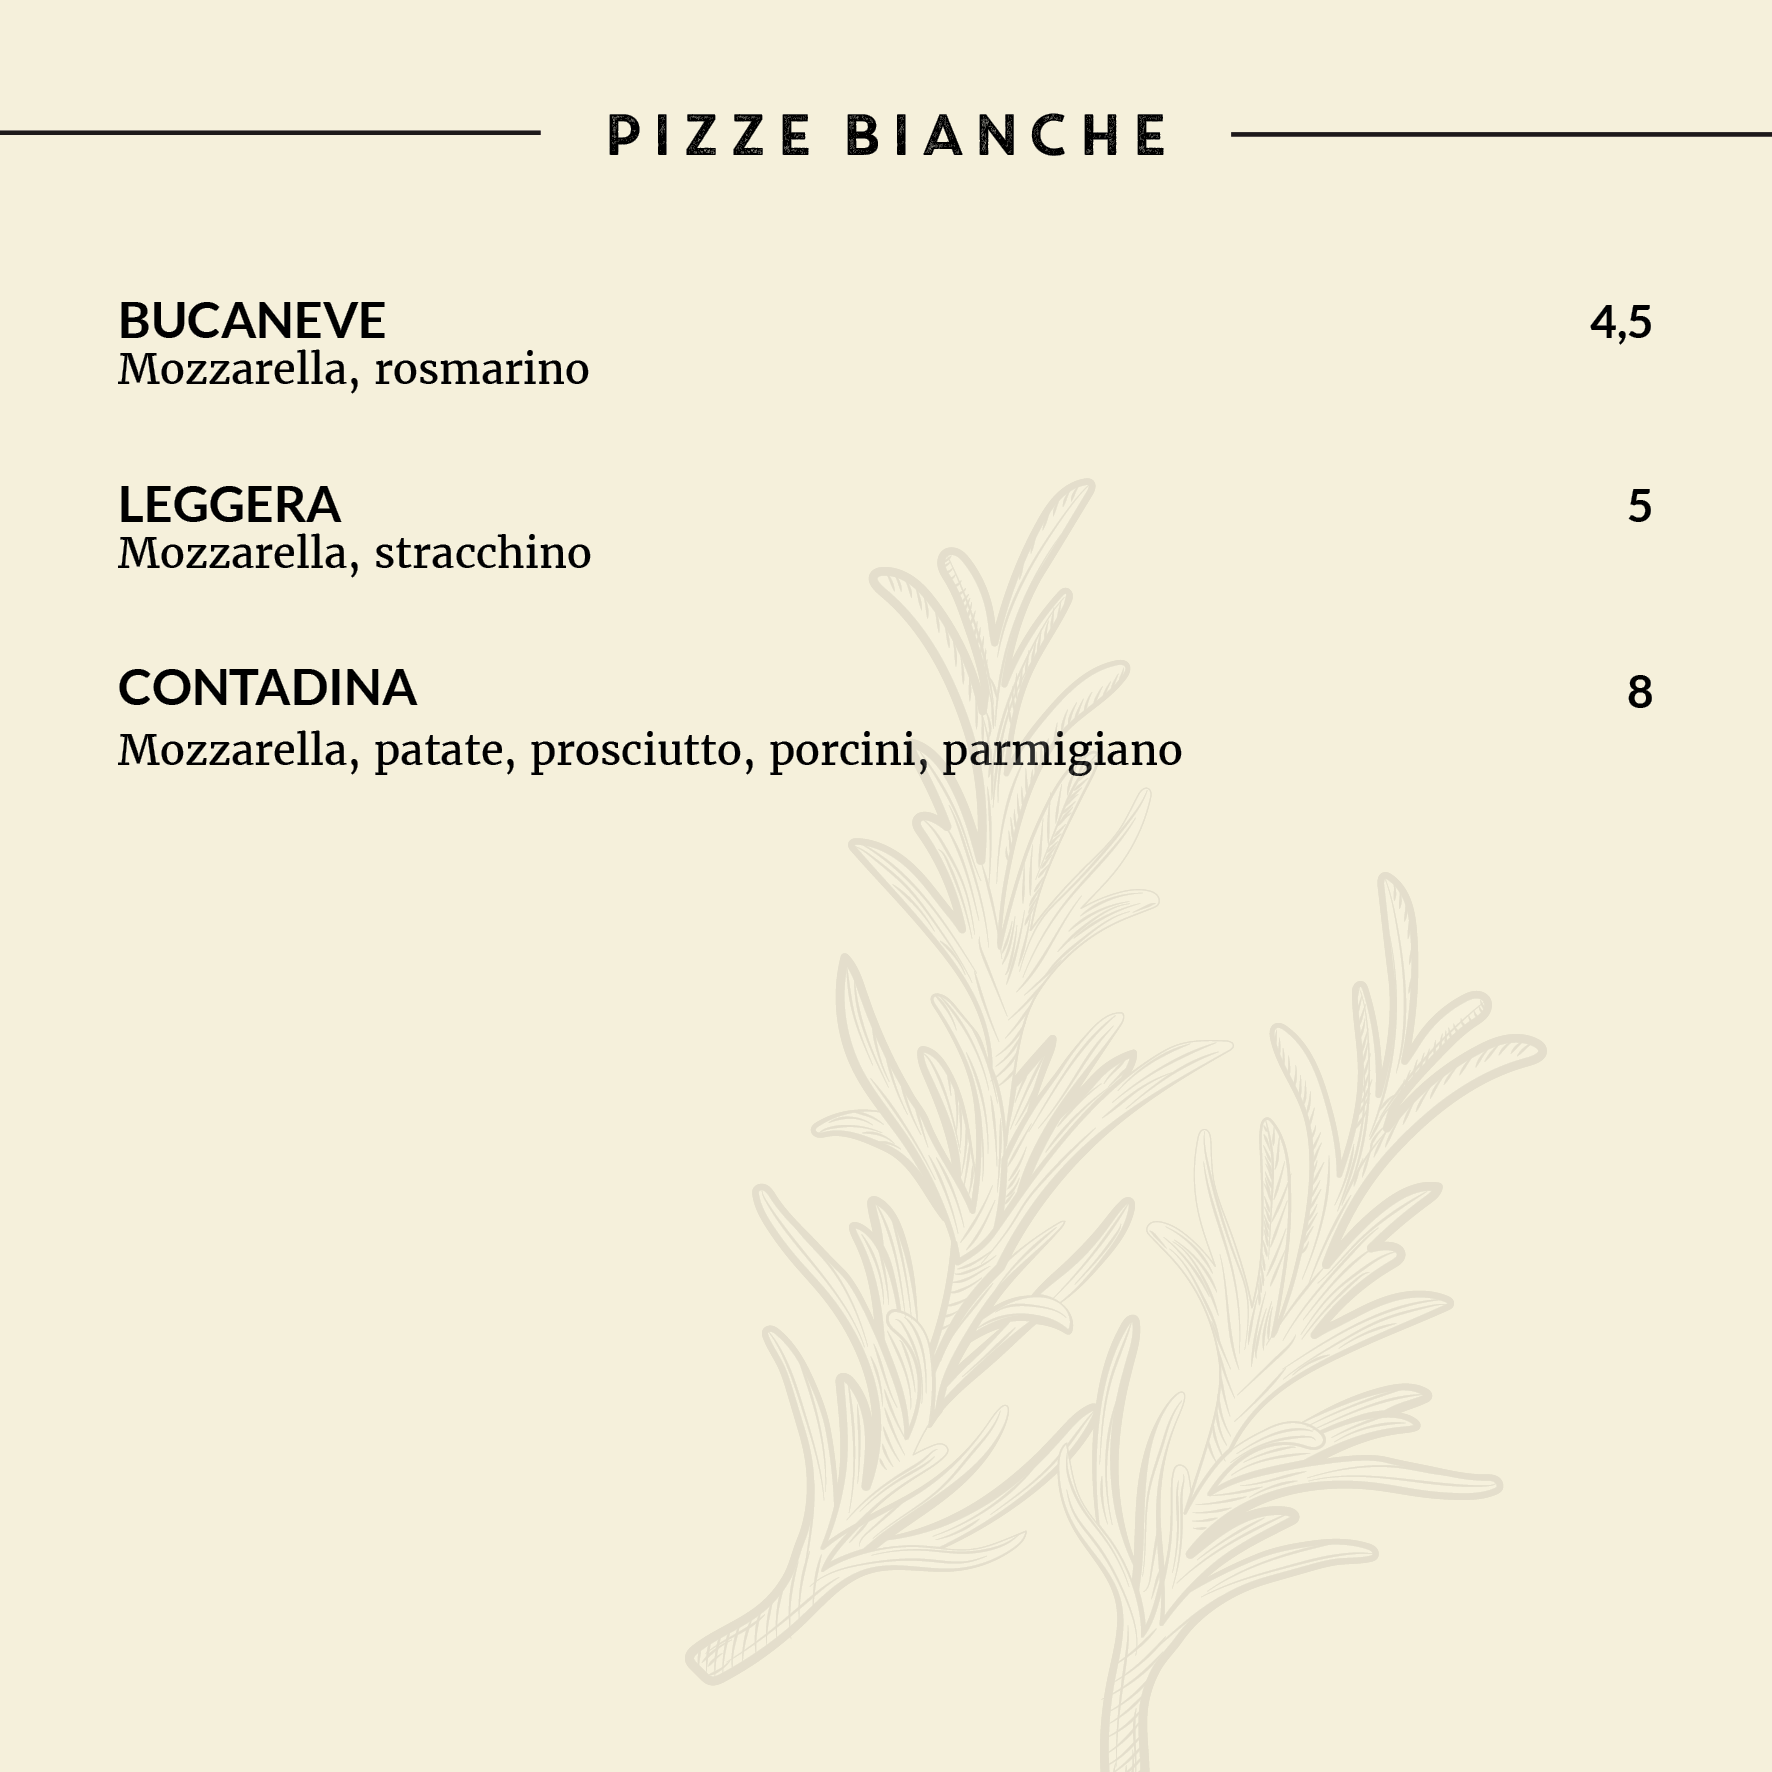 MENU SER PIZZA